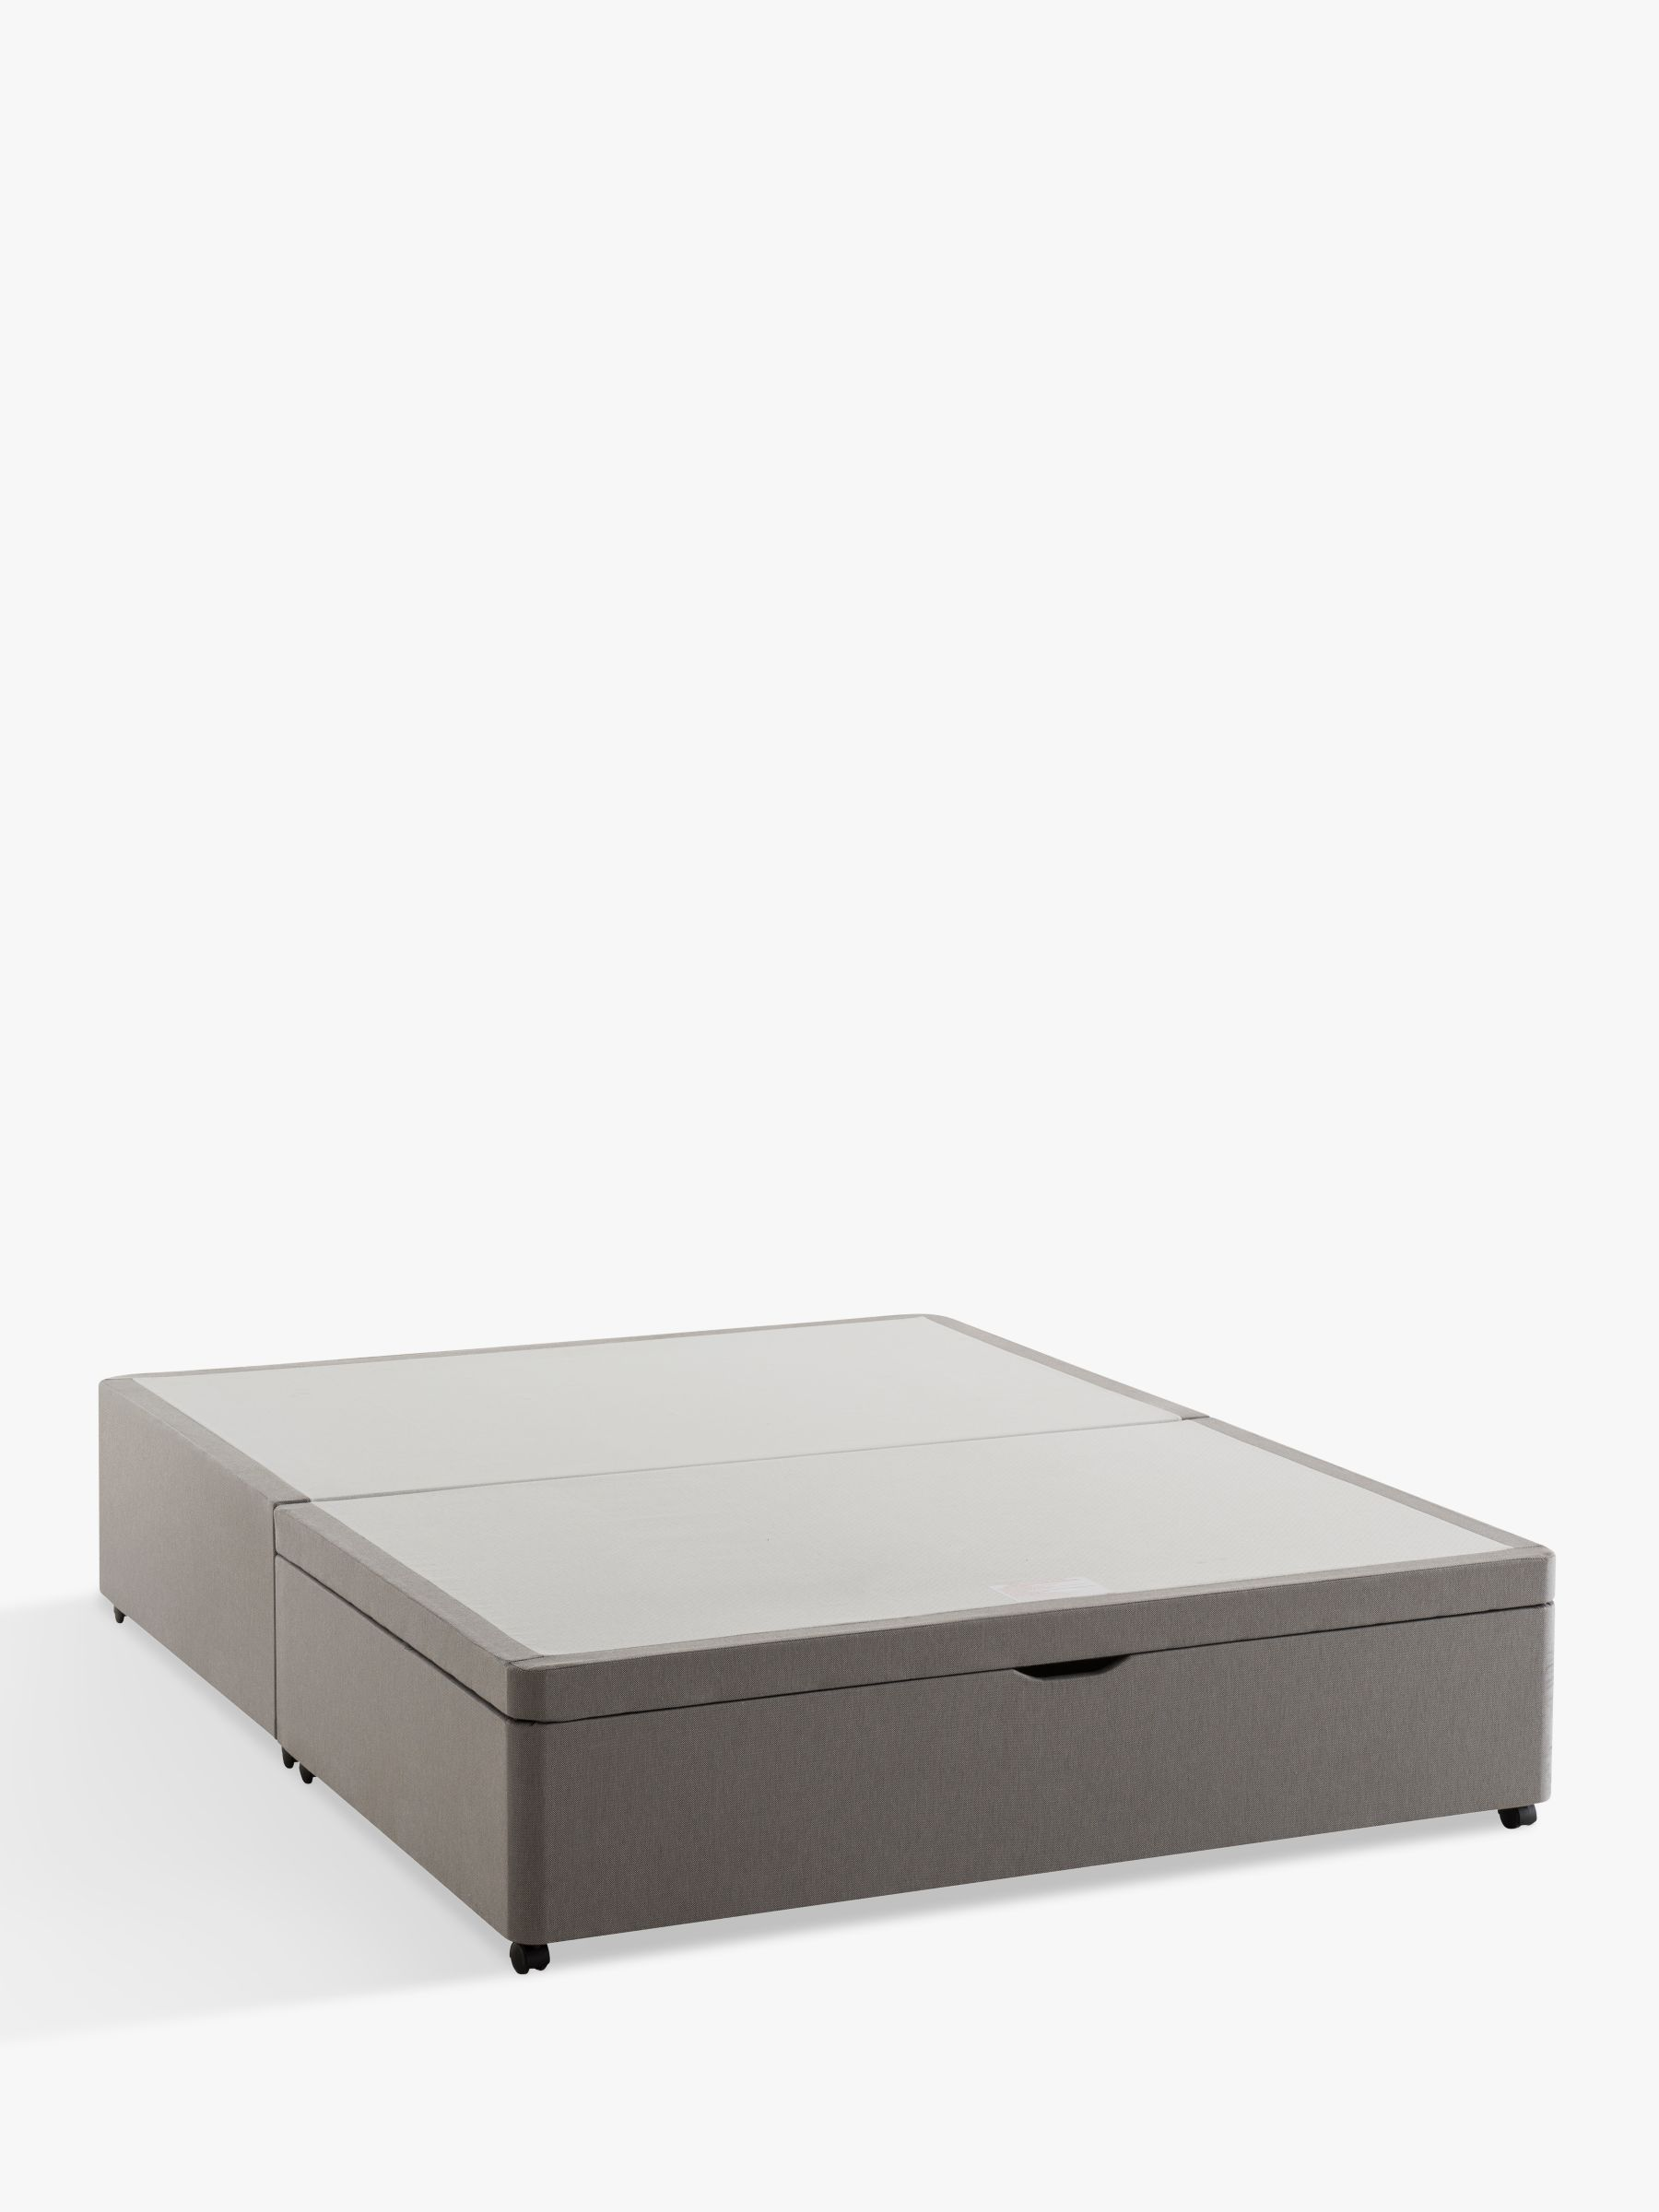 Silentnight End Divan Ottoman Storage Bed Double Octer